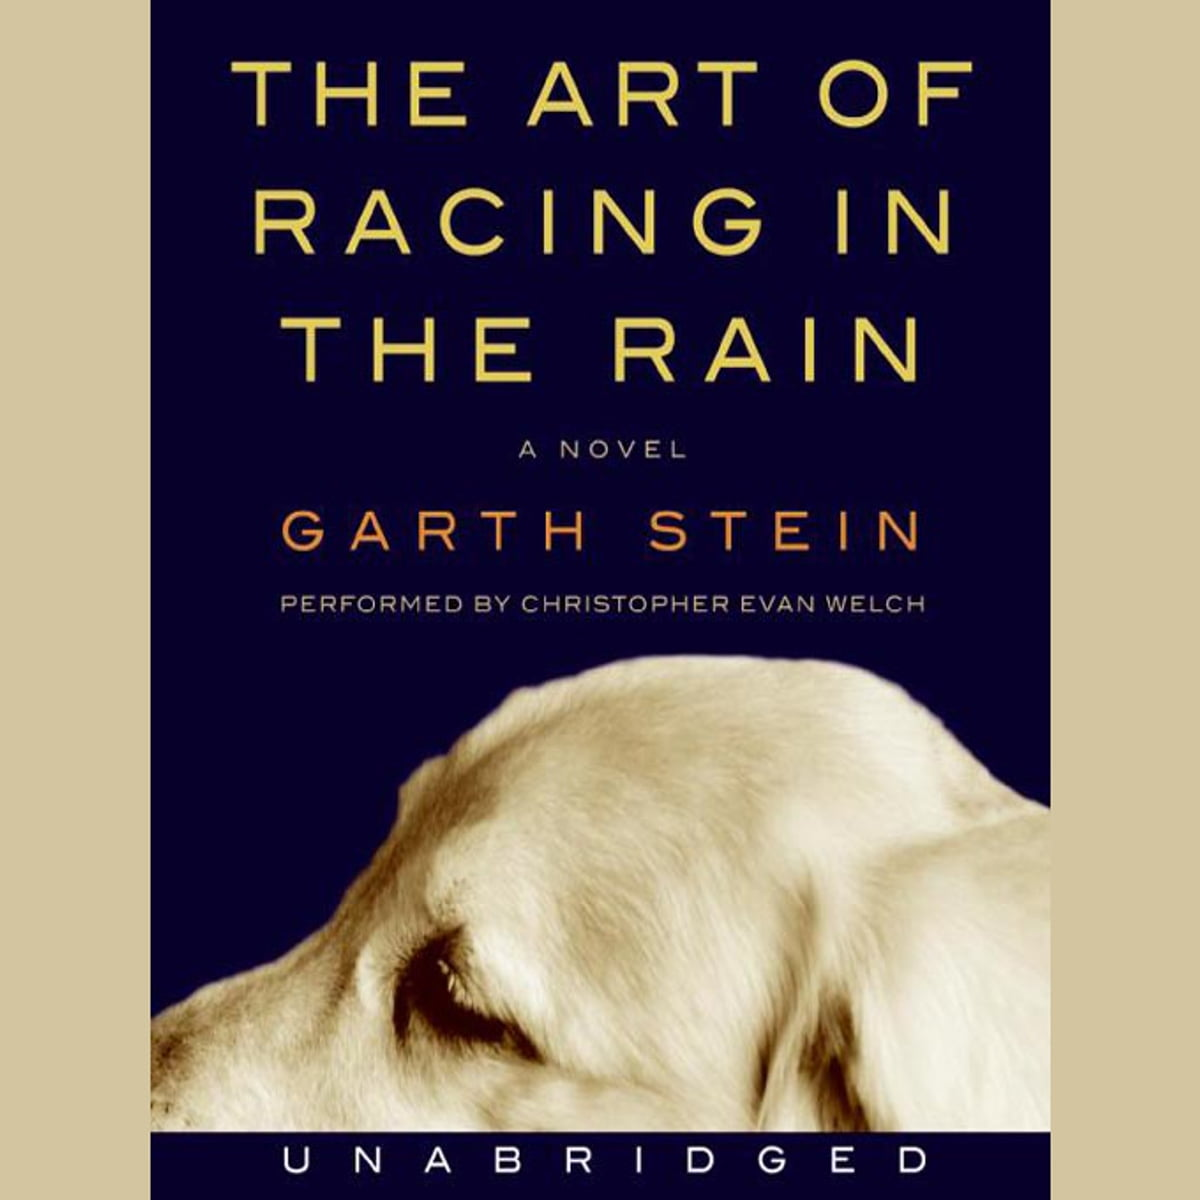 The Art Of Racing In The Rain: The Art Of Racing In The Rain Audiobook By Garth Stein